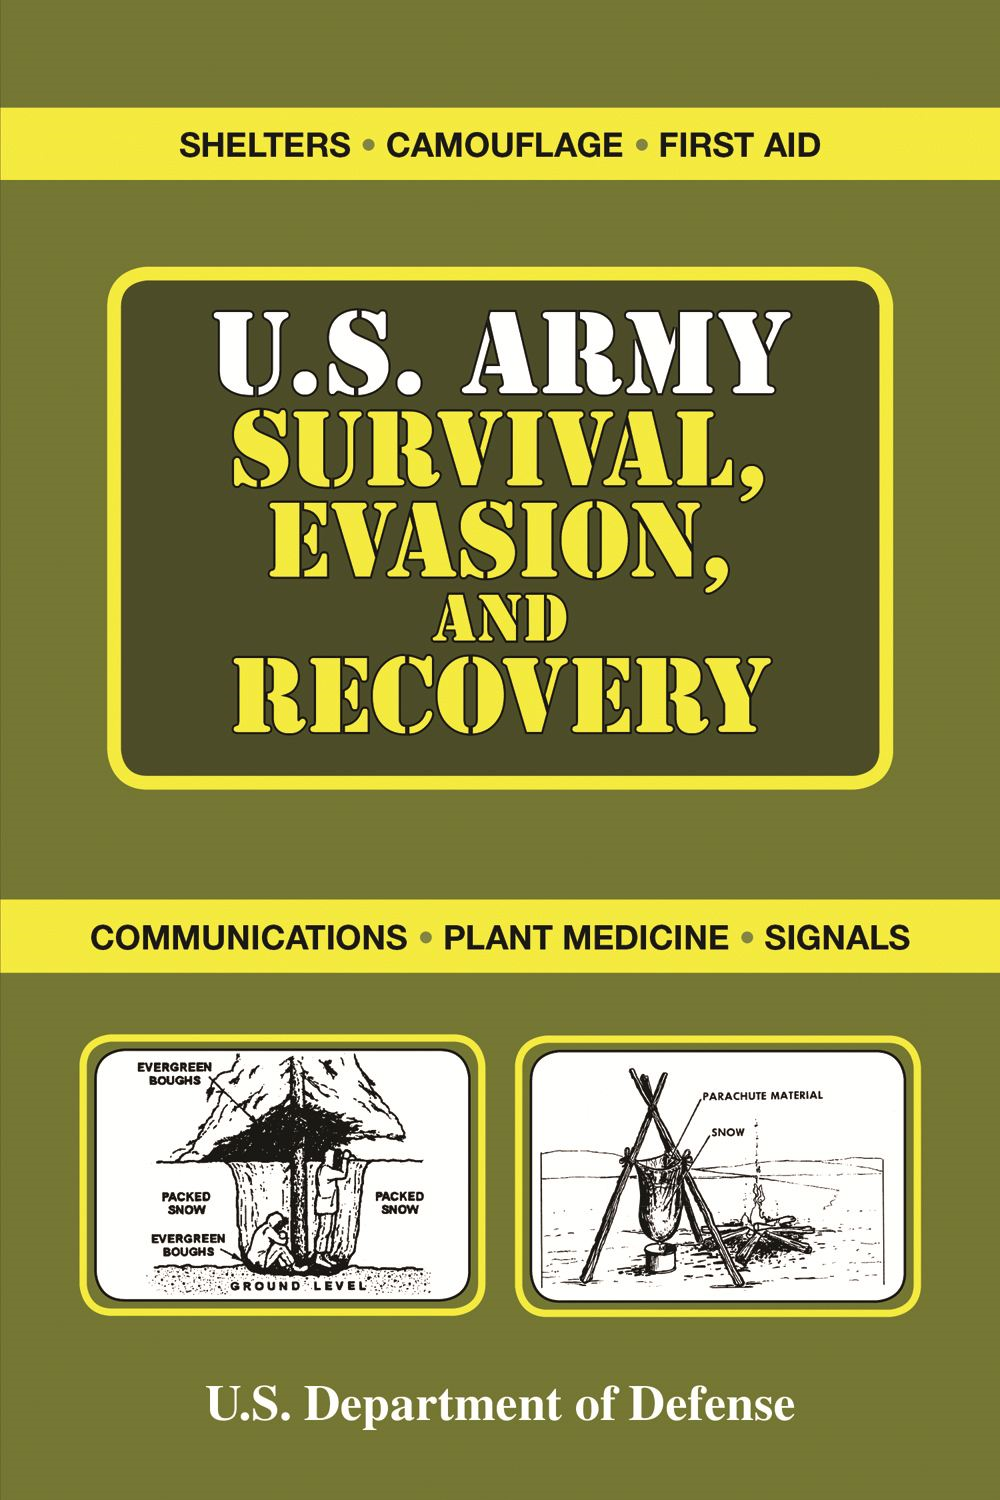 U.S. Army Survival Evasion and Recovery By: U.S. Department of Defense